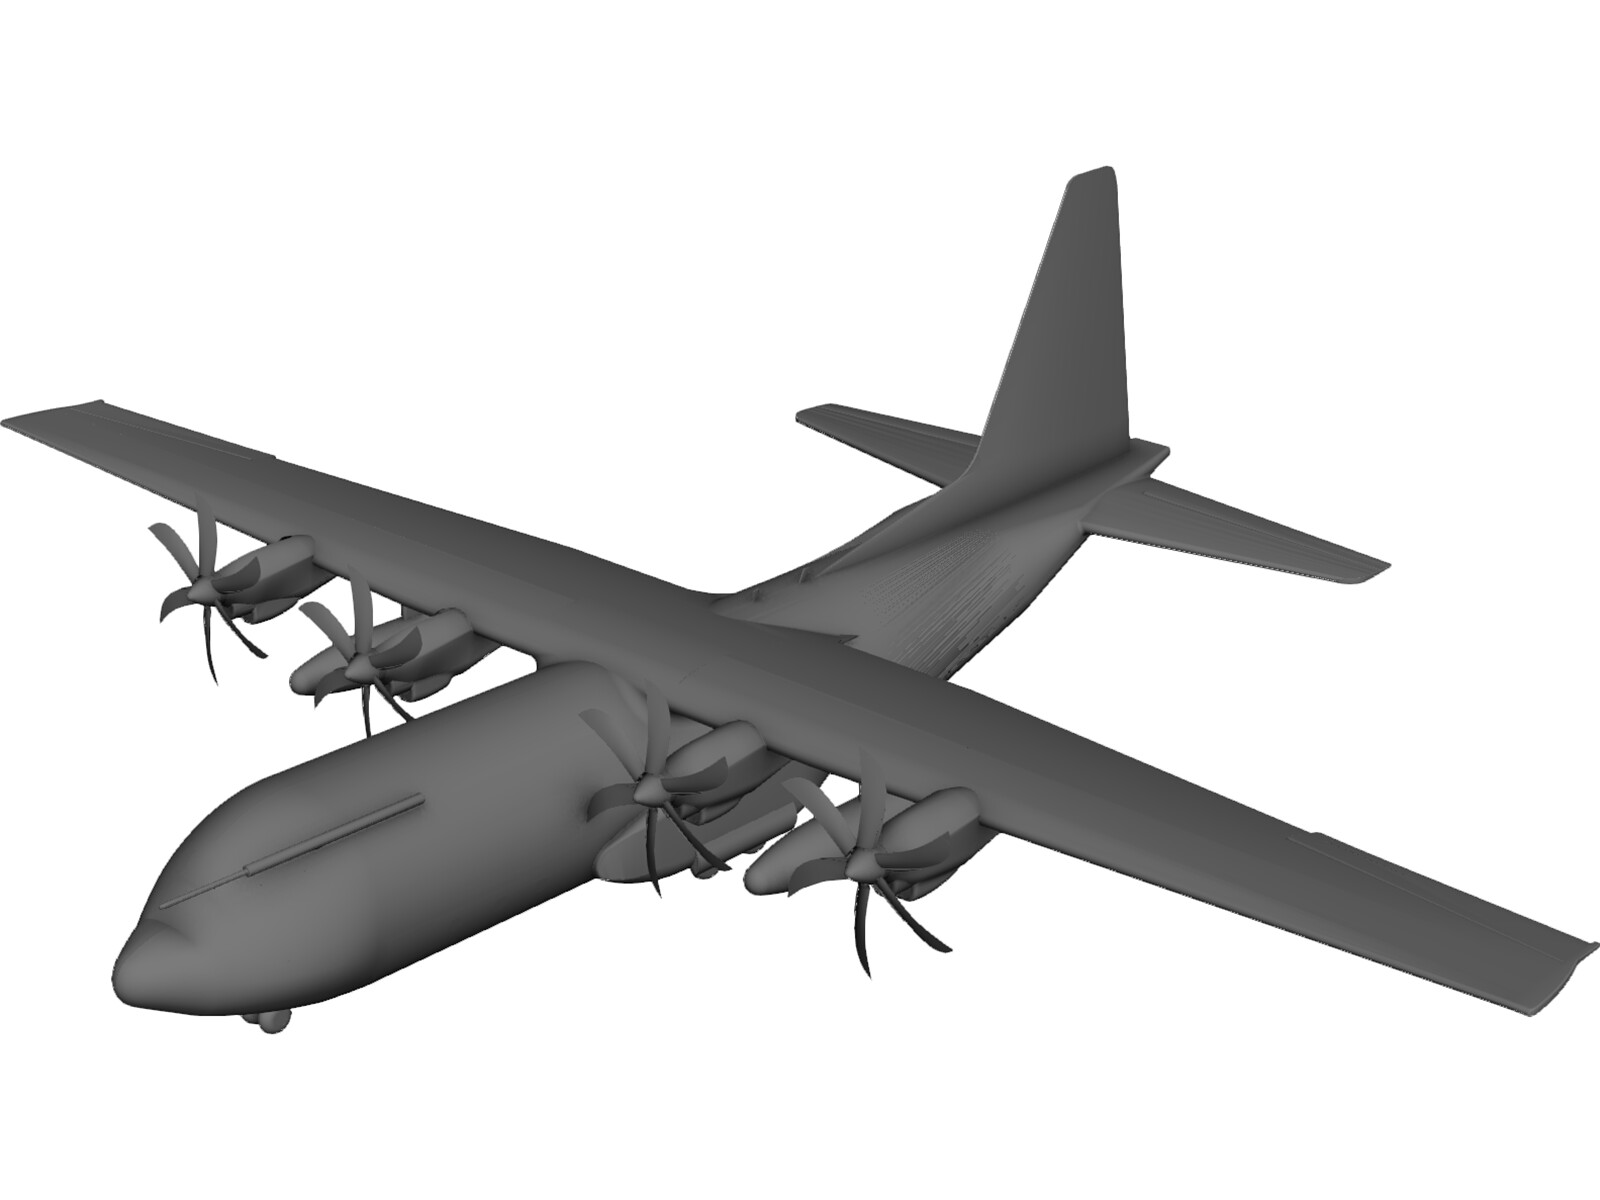 Lockheed C-130 Hercules 3D Model